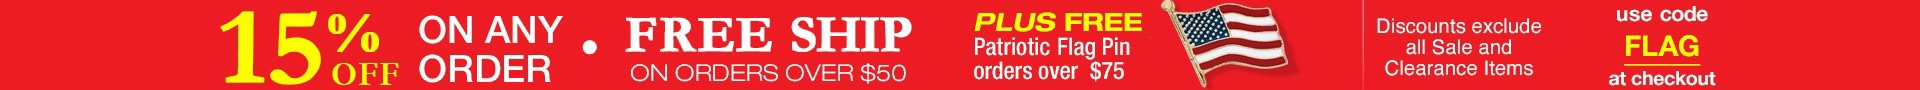 15% Off Any Order Plus Free Flag Pin orders over $75